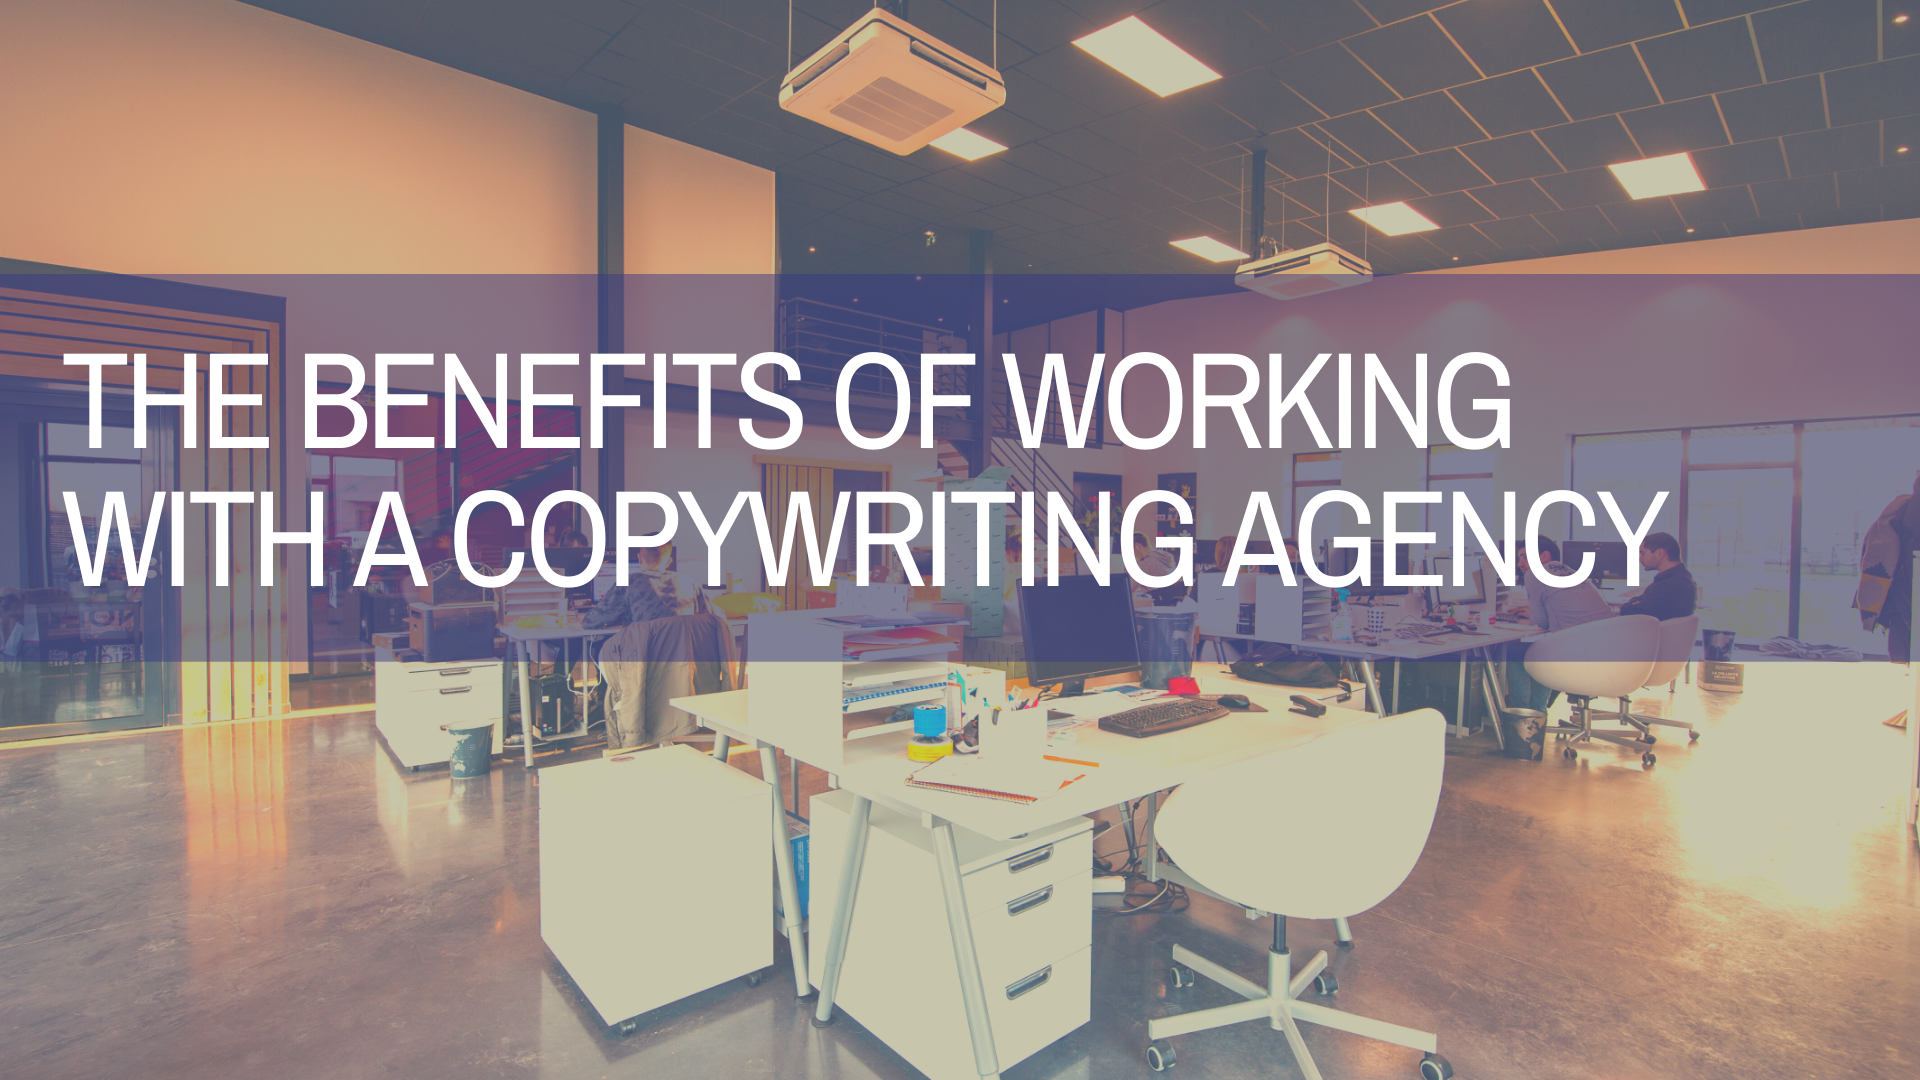 Working with a Copywriting Agency: The Benefits